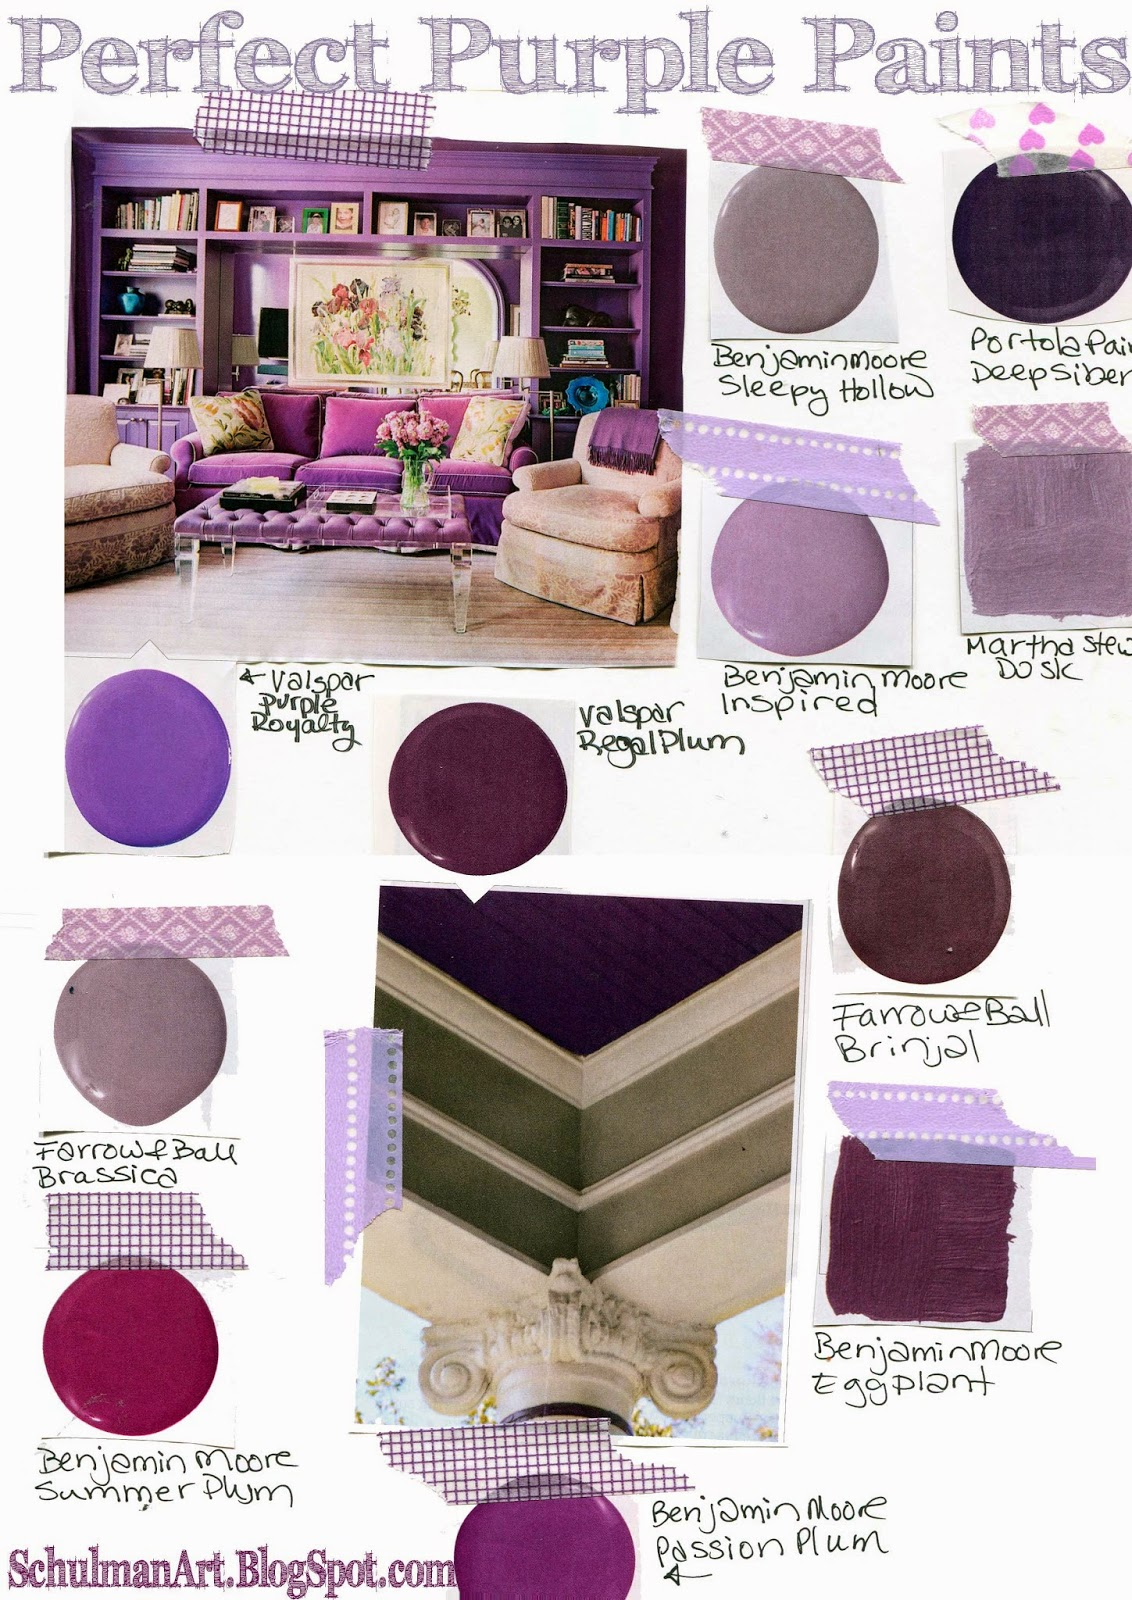 Art blog for creative living 11 perfect purple paint shades - What colors make purple paint ...